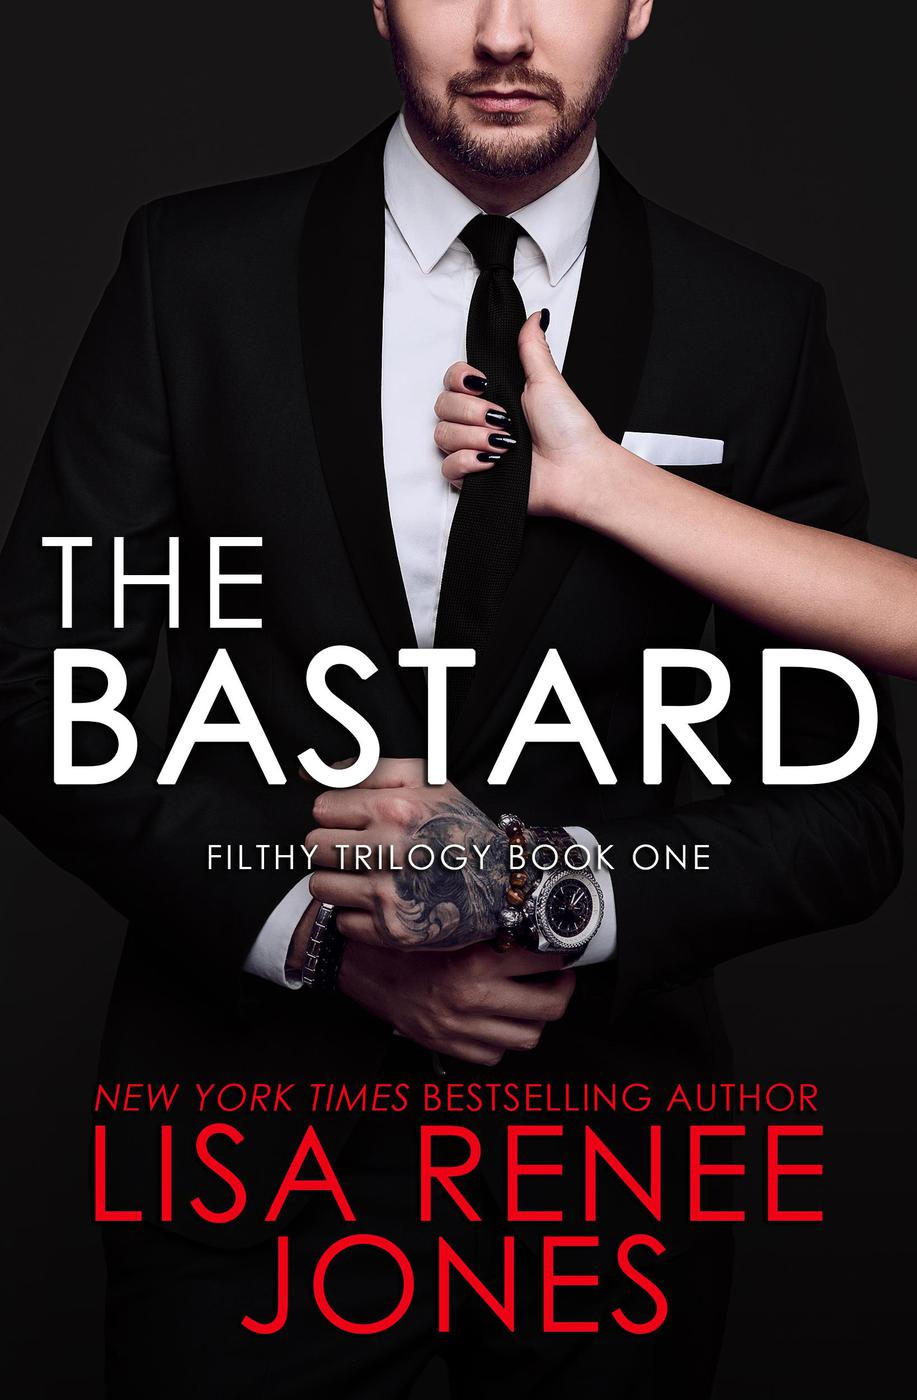 The Bastard (The Filthy Trilogy, #1)